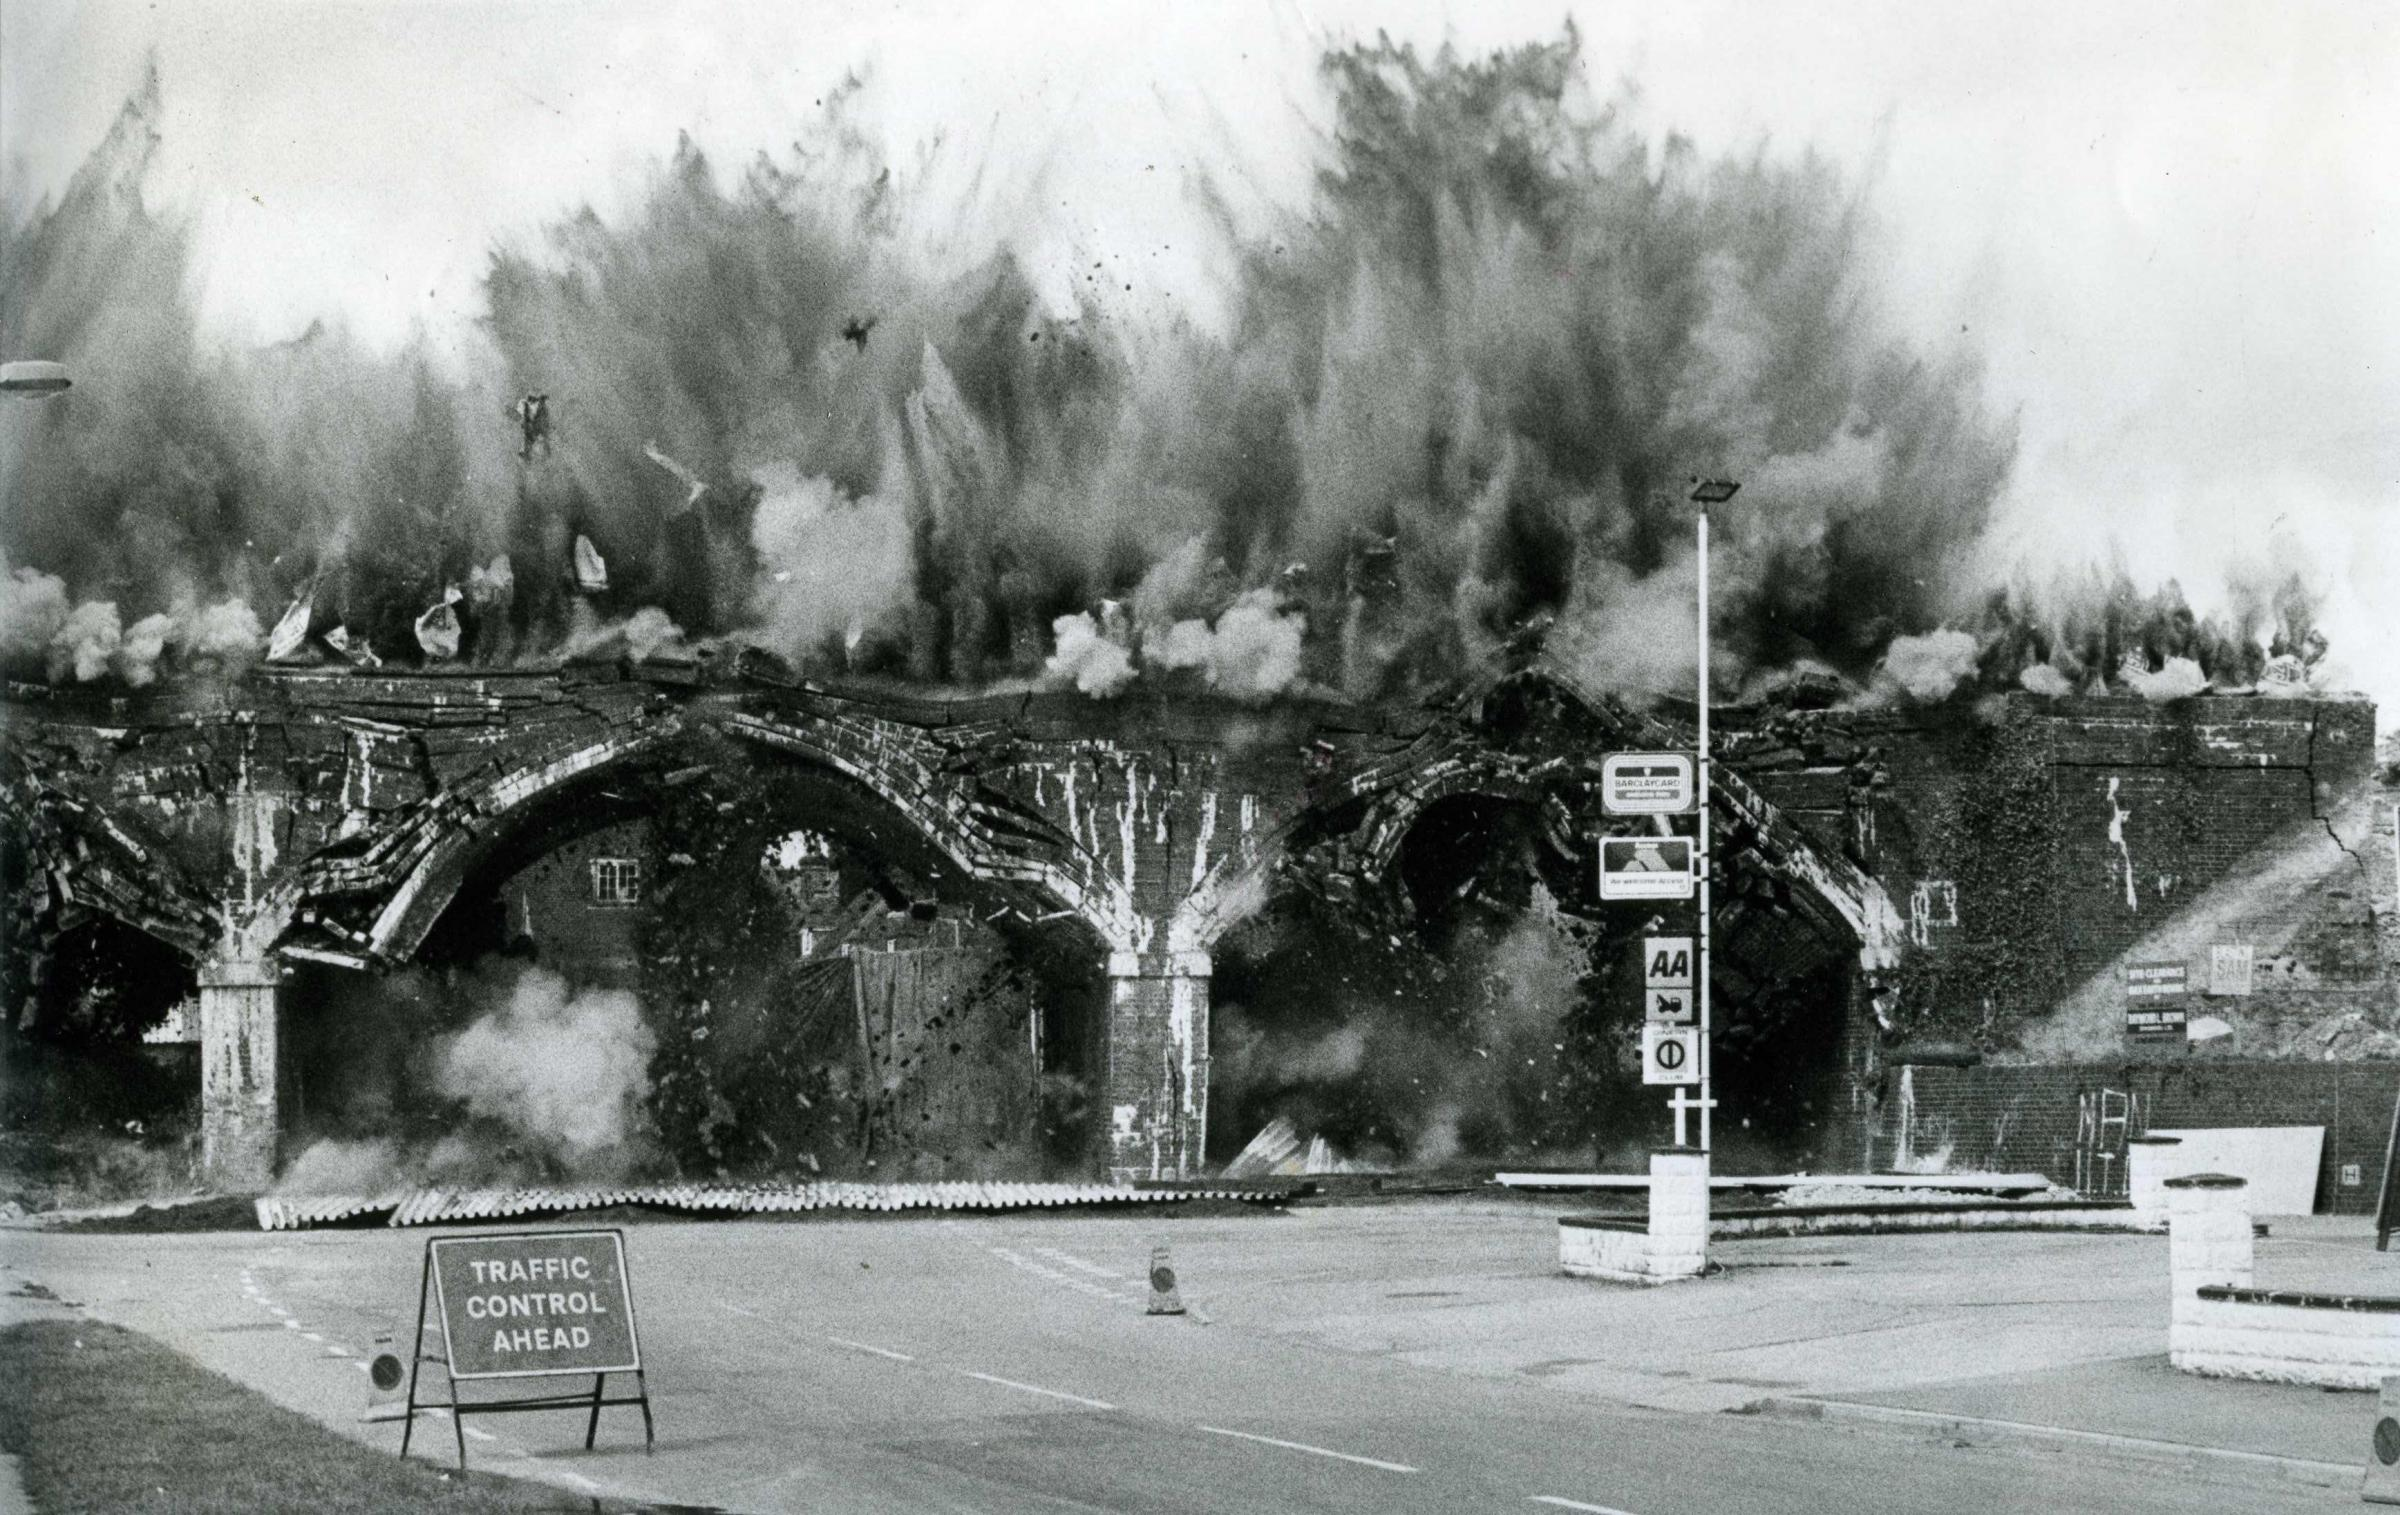 Dramatic explosion captured during the demolition of the Blandford Railway Arches in Blandford 1978.  Following the Bournemouth and Bath line closed to passenger back in 1966 the line remained open to goods traffic until 1969 when Blandford station was cl